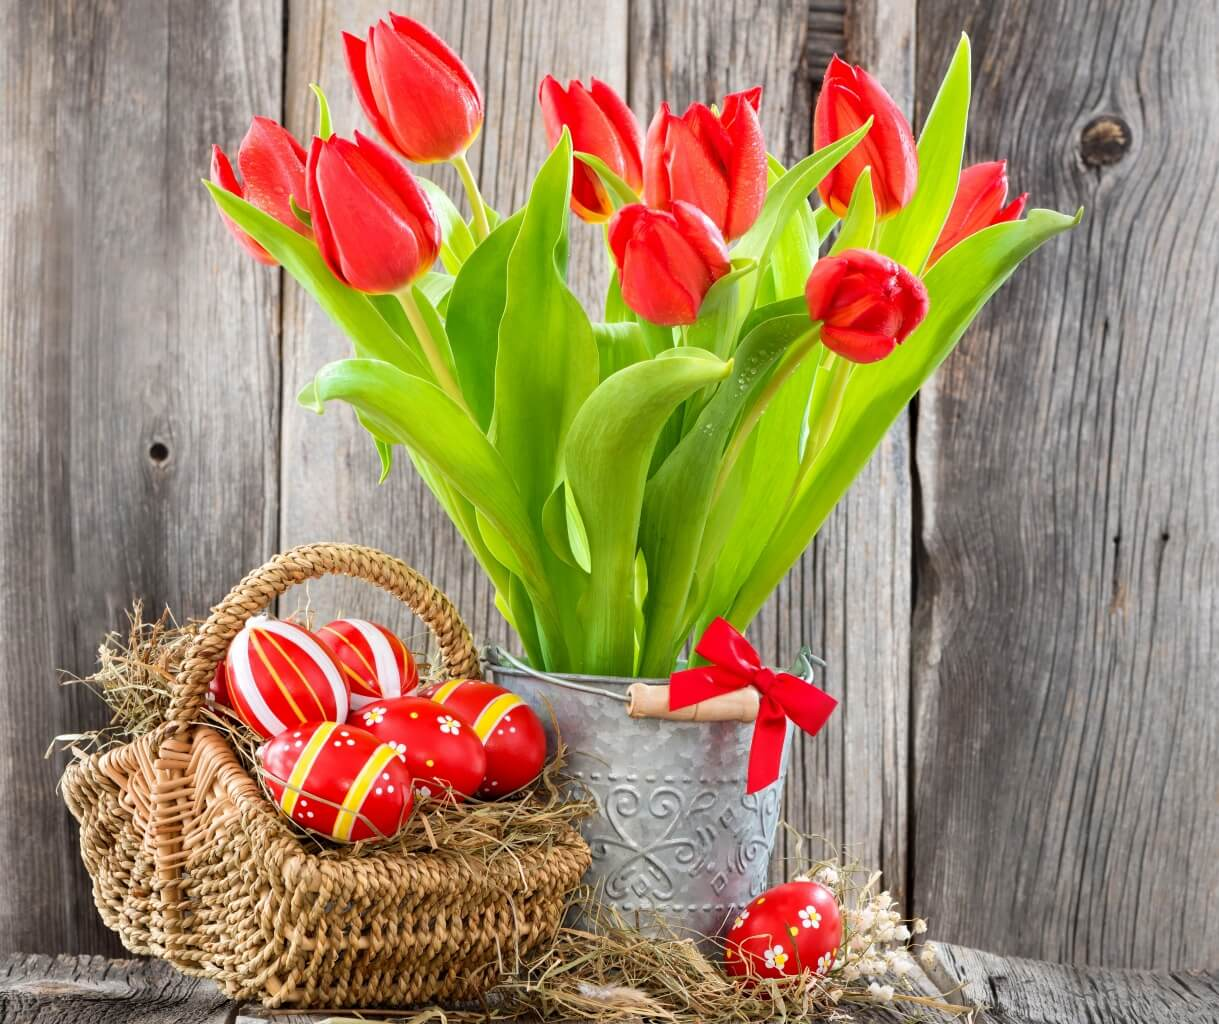 Crimson Tulips and Vibrantly Painted Eggs